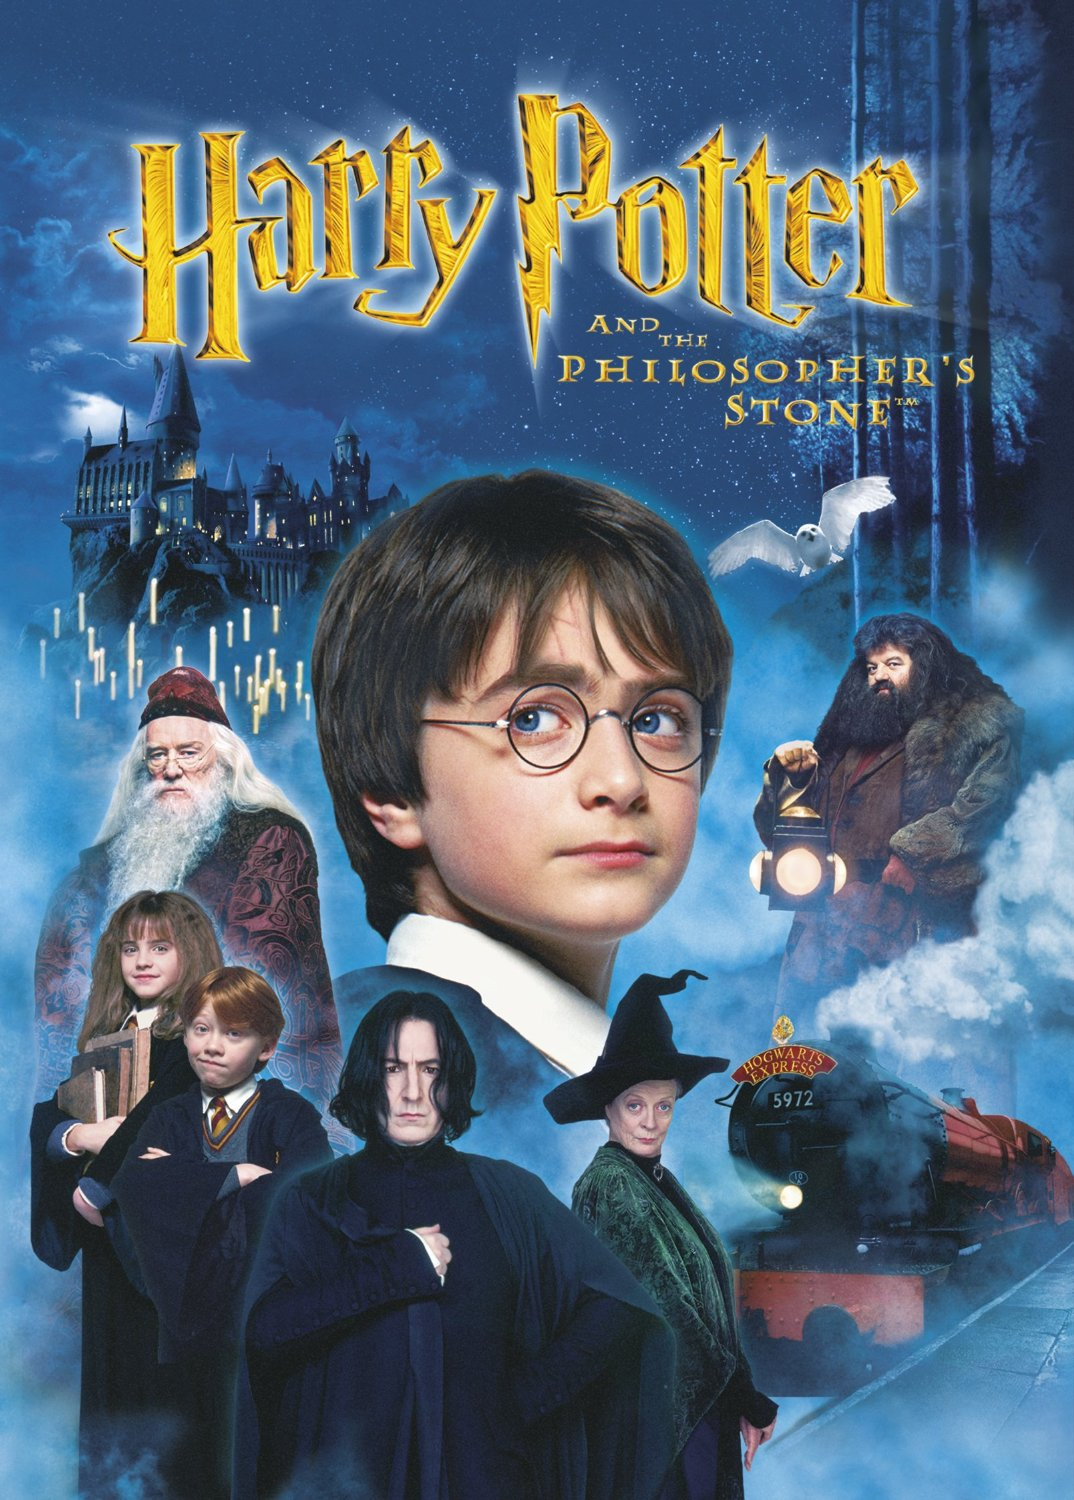 Wee Shubba39s World MovieReview Harry Potter and the